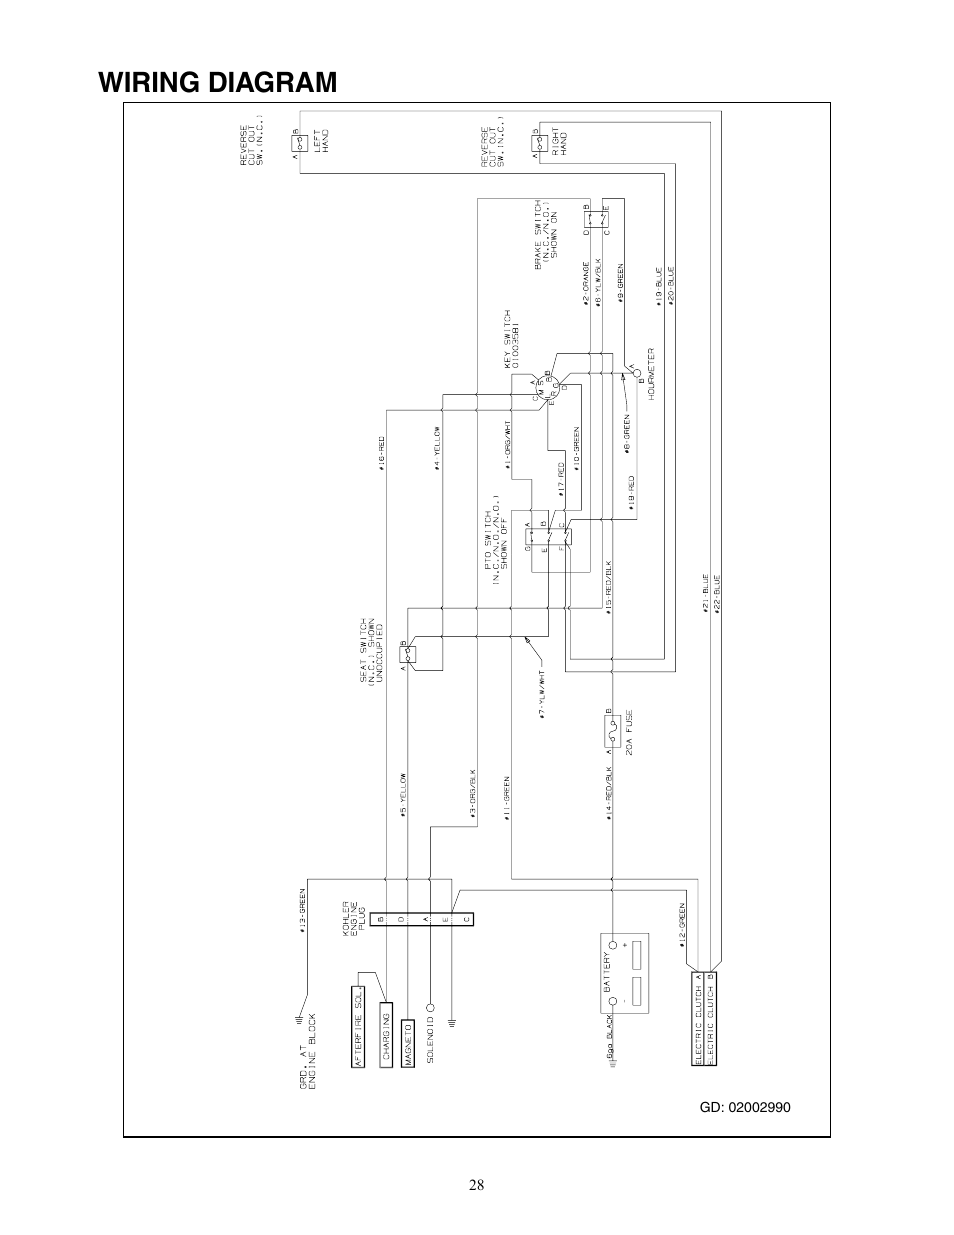 hight resolution of wiring diagram cub cadet 23hp z force 50 user manual page 28 32